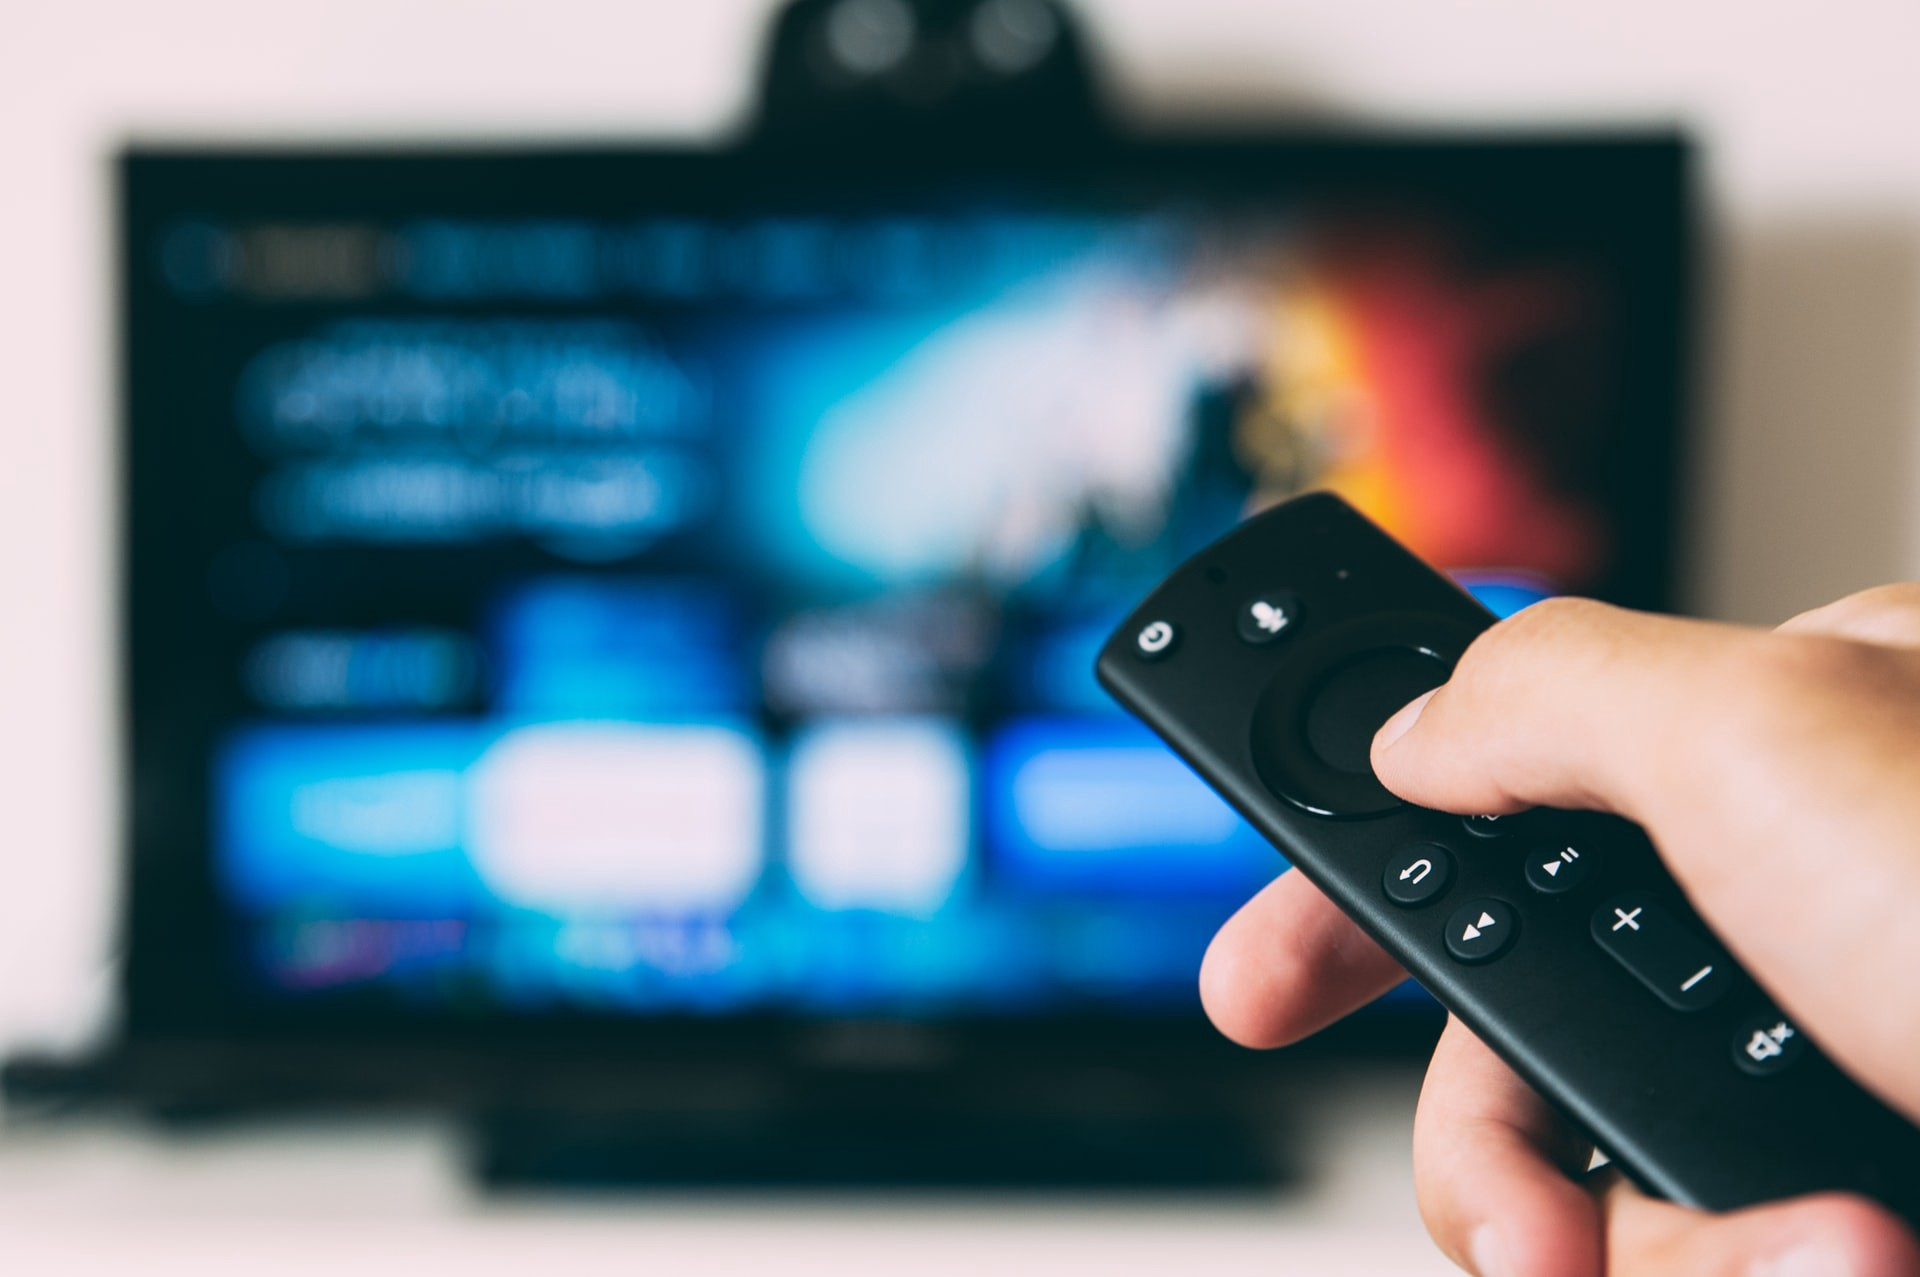 Hand holding a remote in front of a flat screen TV in the background.